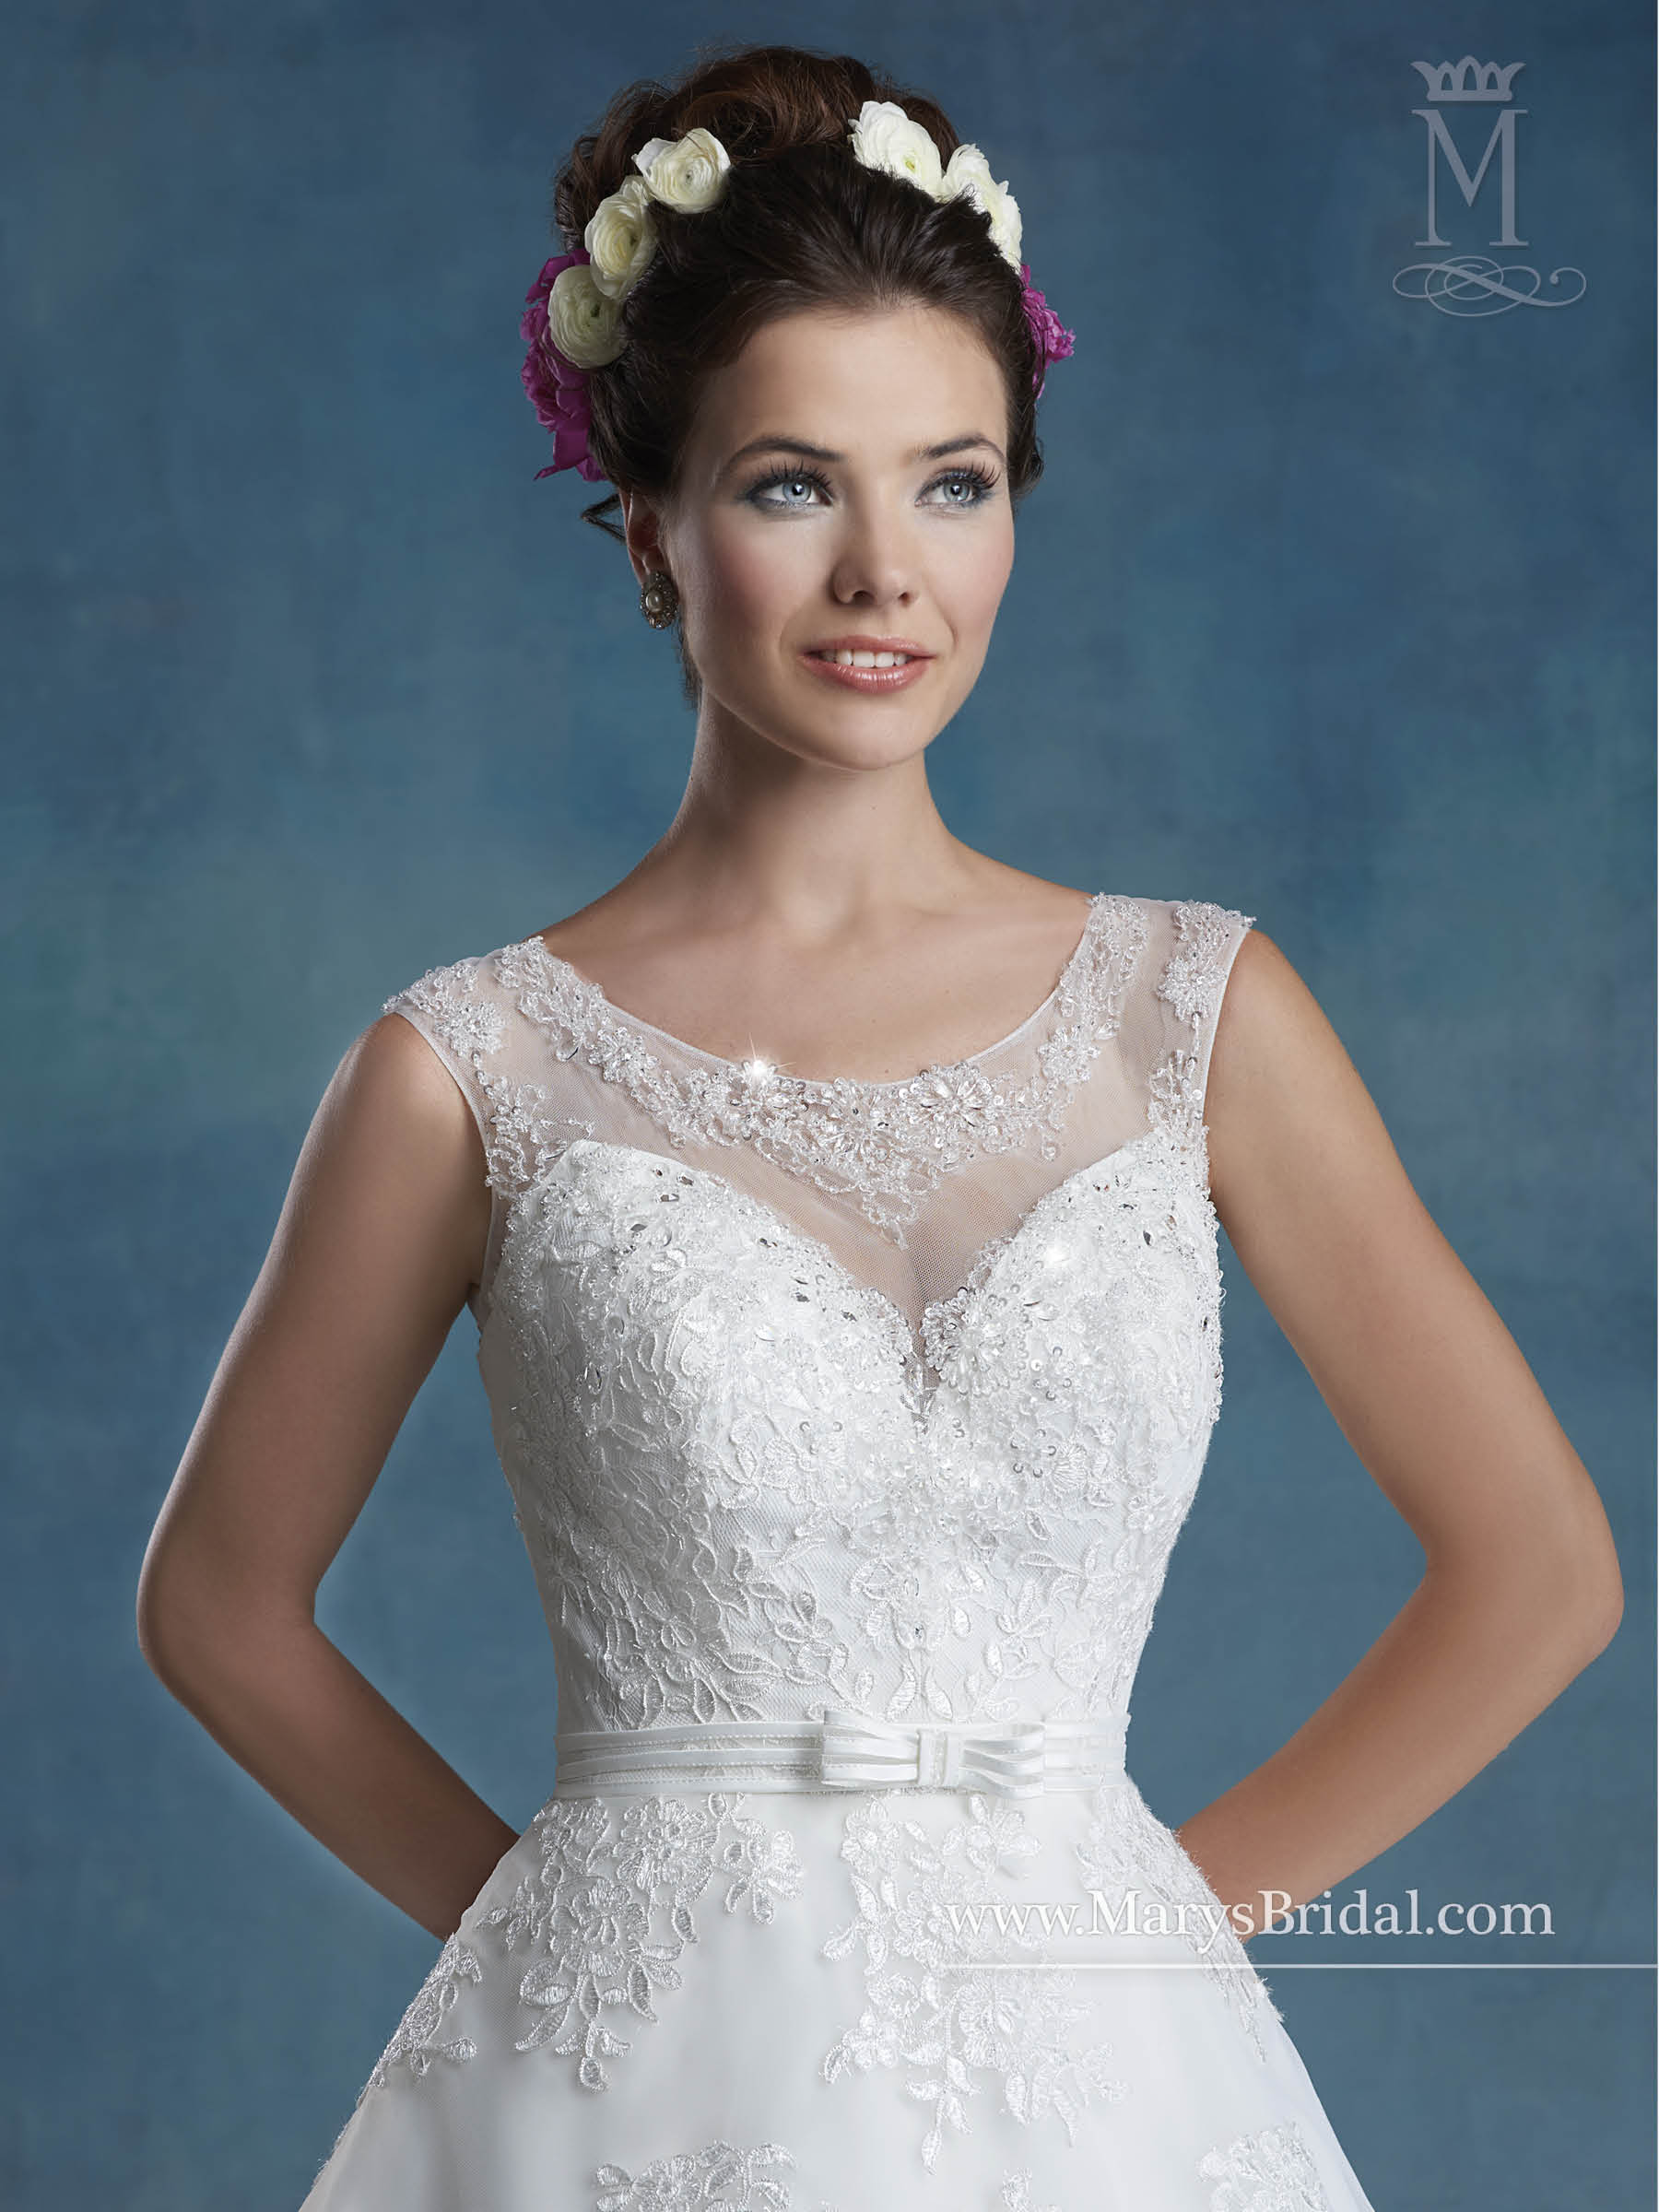 Bridal Wedding Dresses | Style - 6548 in Ivory or White Color